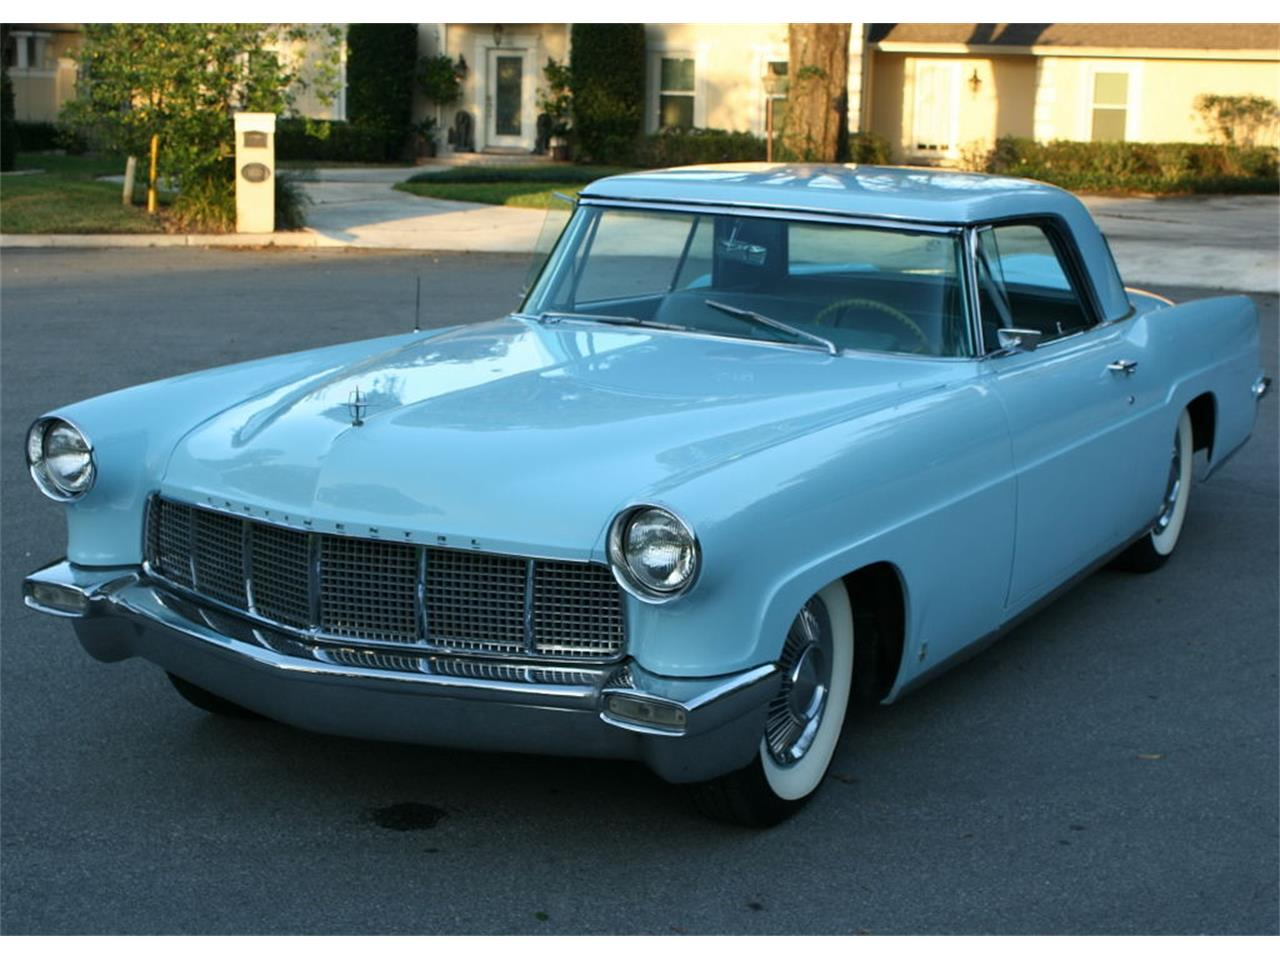 1956 Lincoln Continental Mark Ii For Sale Classiccars Com Cc 1043754